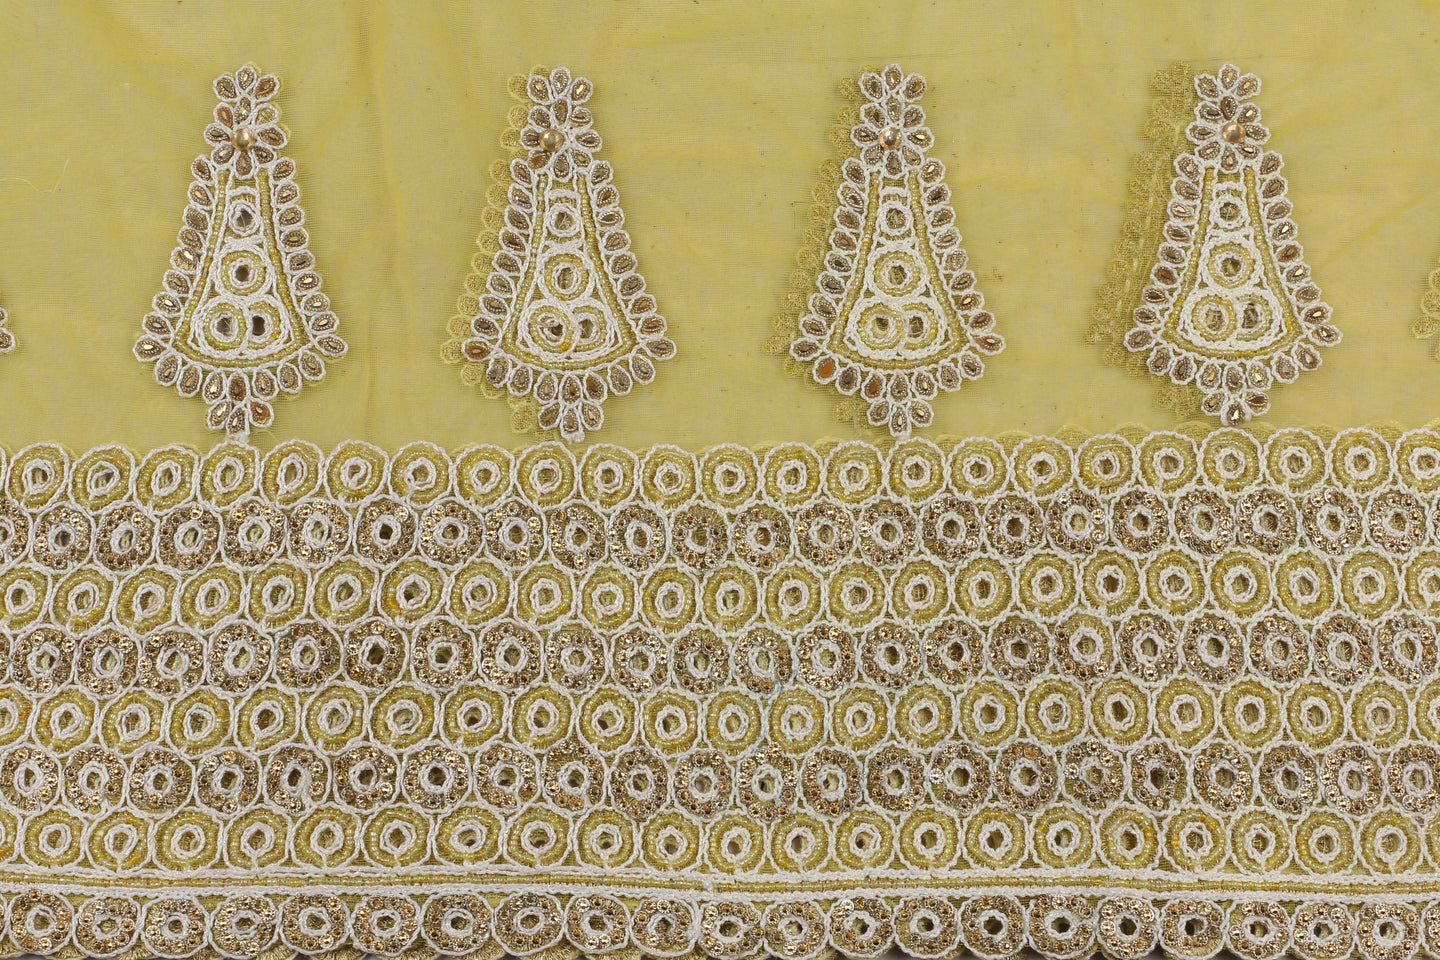 Hand Embroidered Blouse Design # 3368 - Yellow - With Blouse - 1.7 Yards